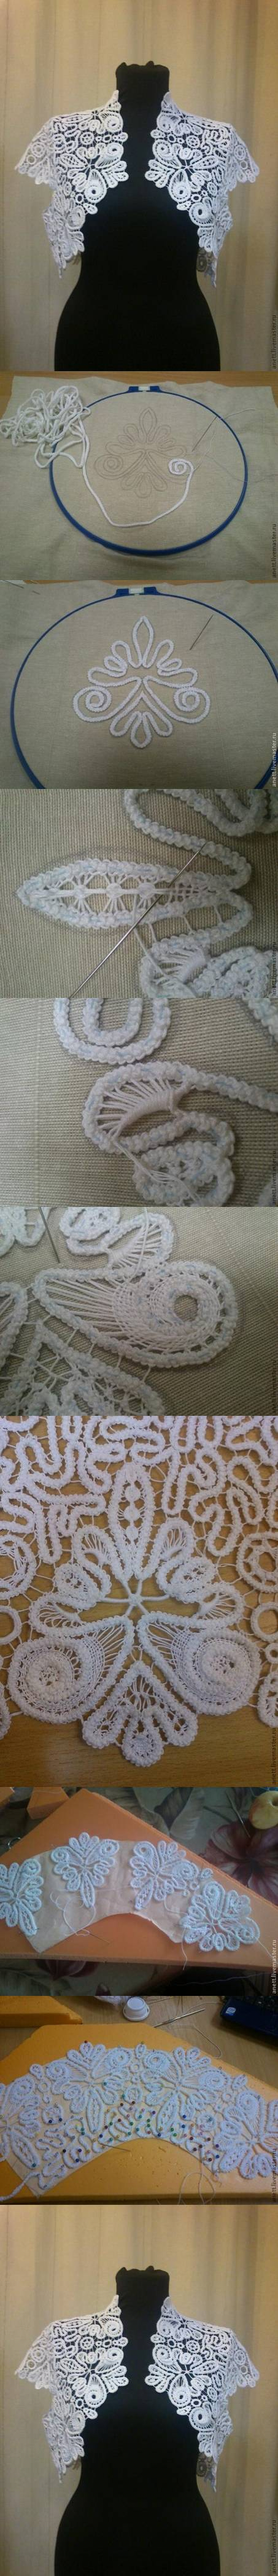 How to knit beautiful  Romanian Laces tops step by step DIY tutorial instructions